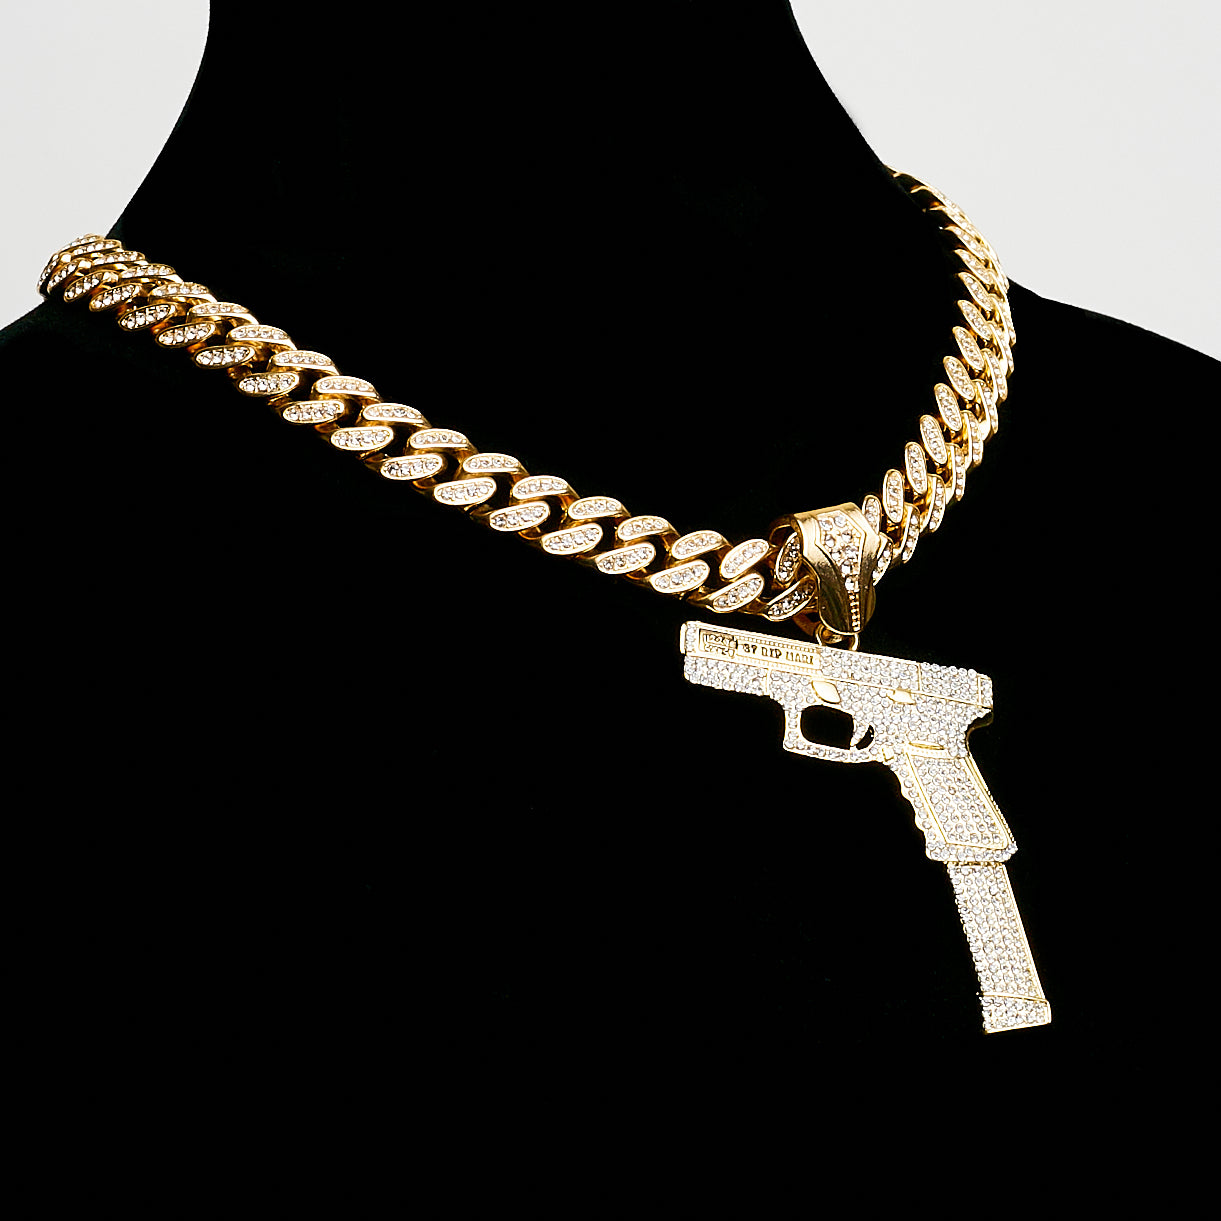 14K Iced Out Miami Cuban Glizzy Glock Chain